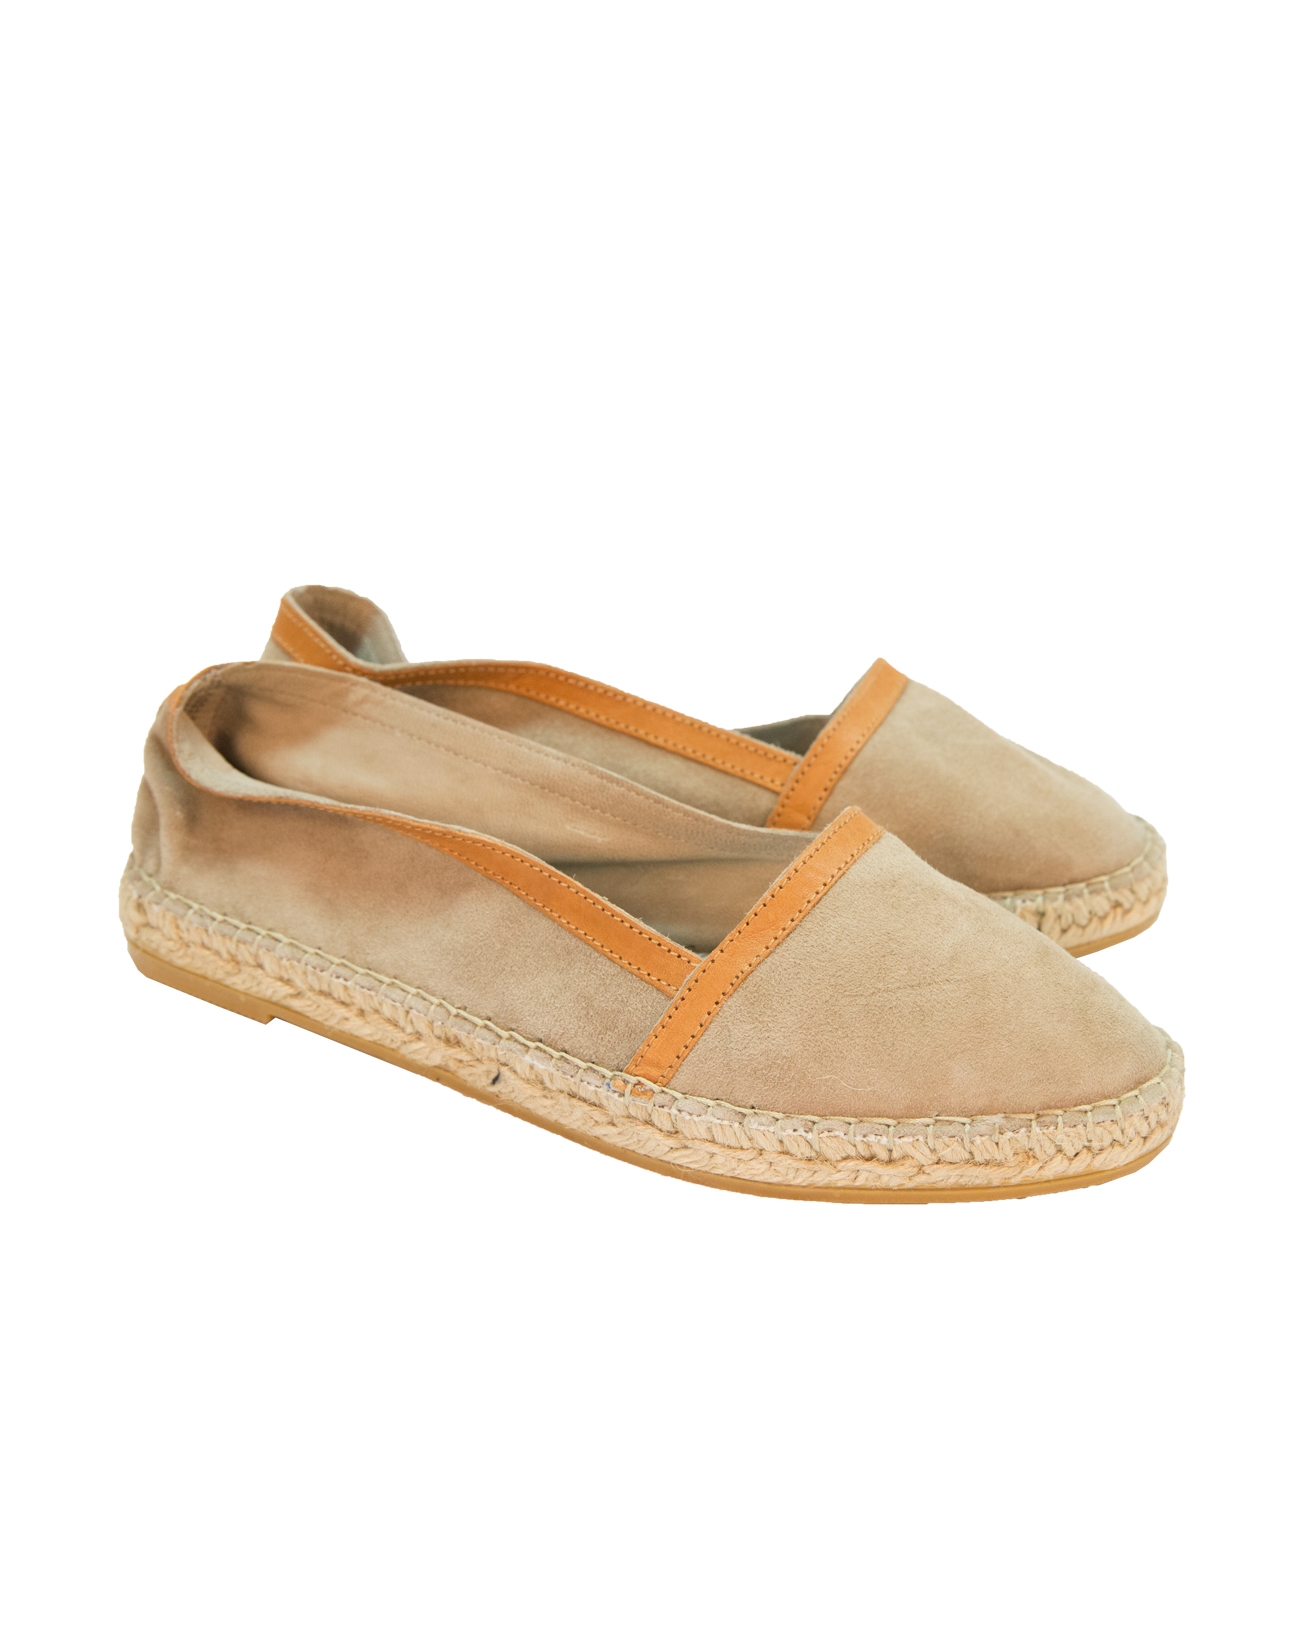 Suede Venetian Espadrille - Size 37 - Taupe - 76